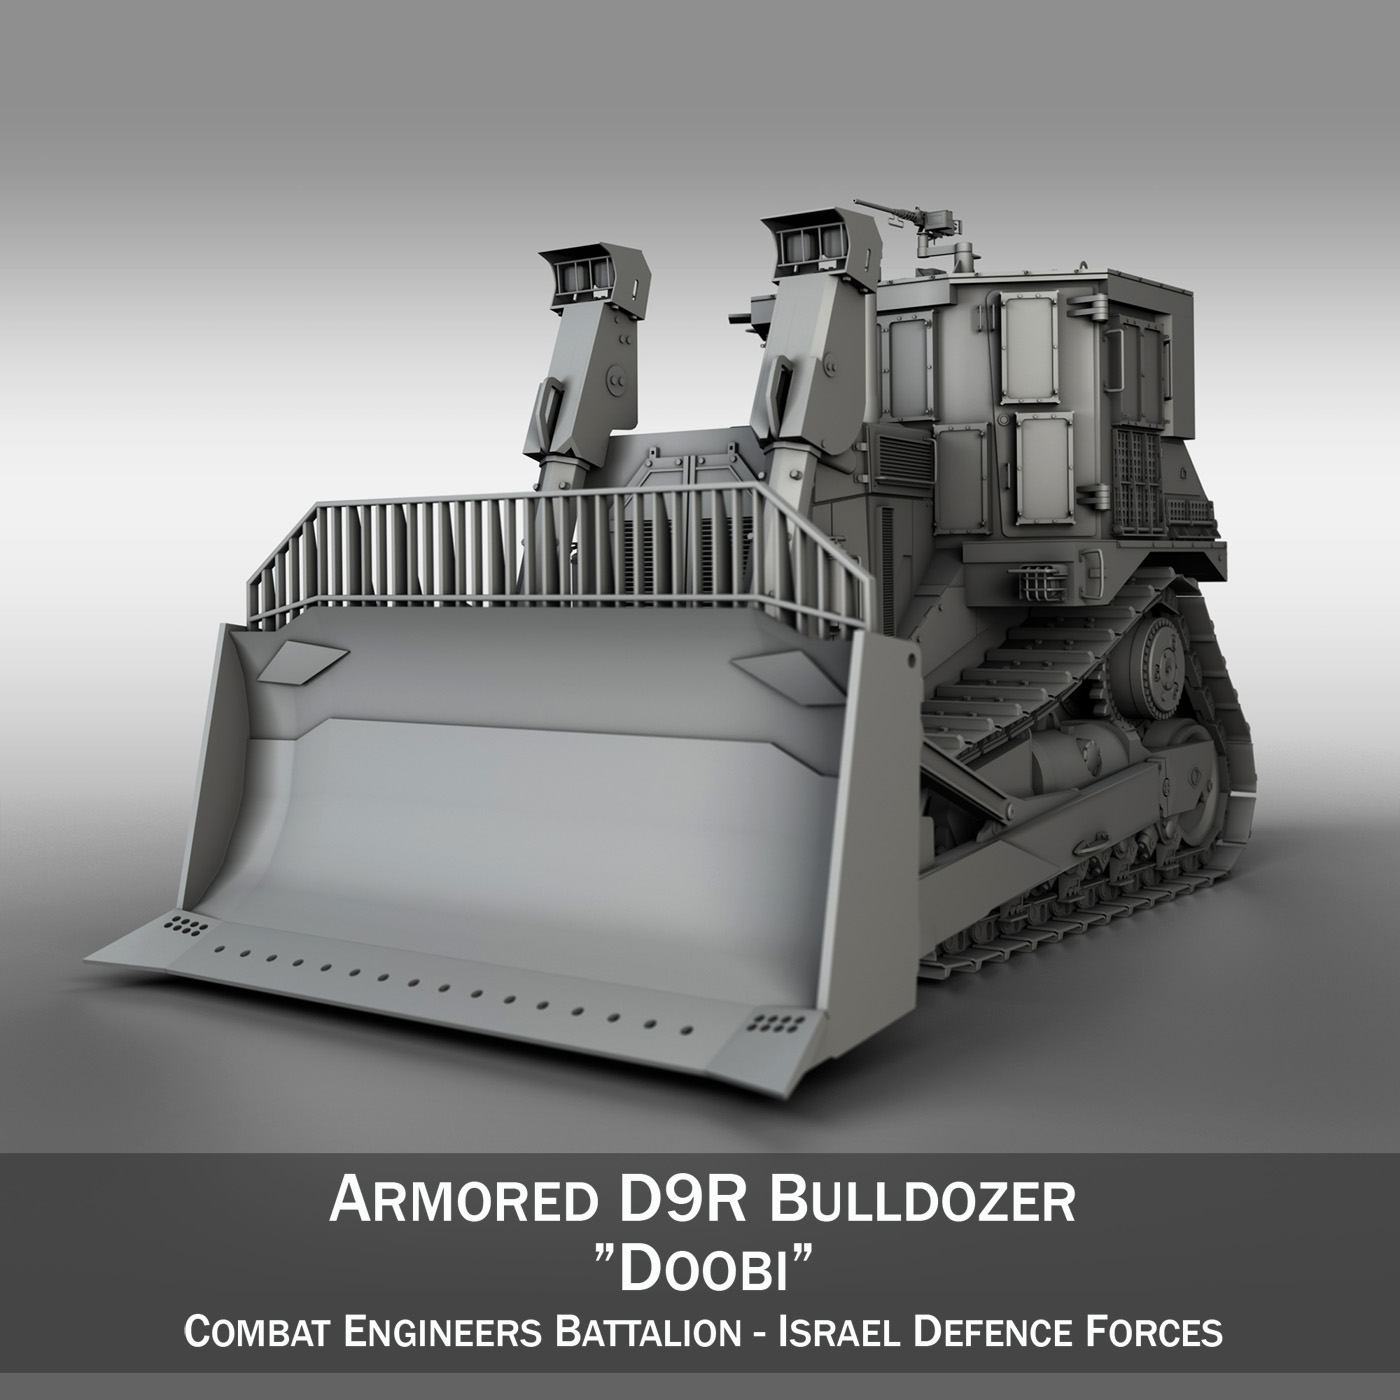 armored cat d9r bulldozer 3d model 3ds fbx c4d lwo obj 201401